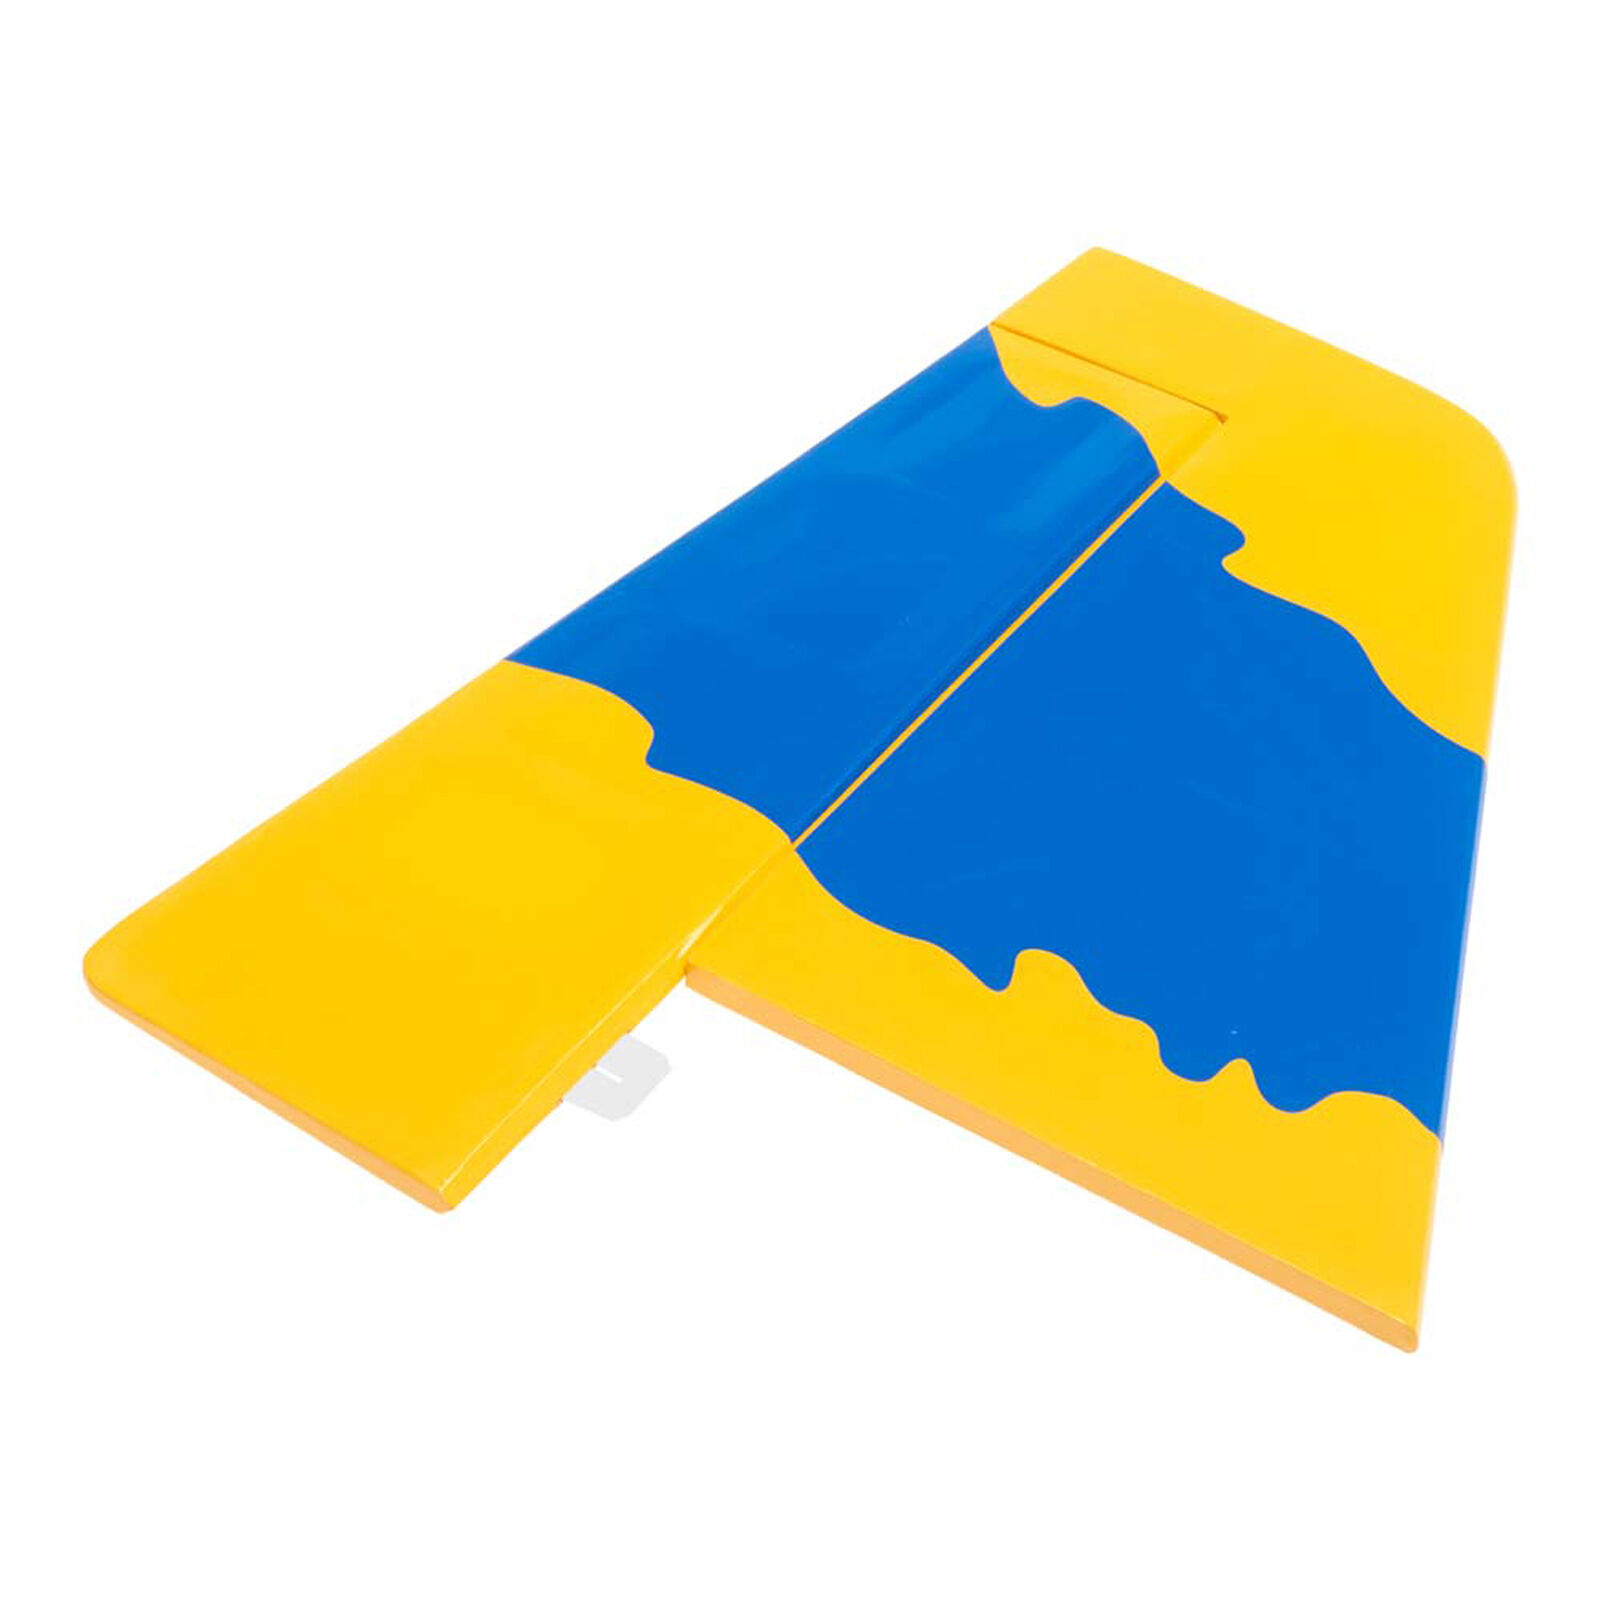 Vertical Stabilizer Outrageous 46-55 EP A